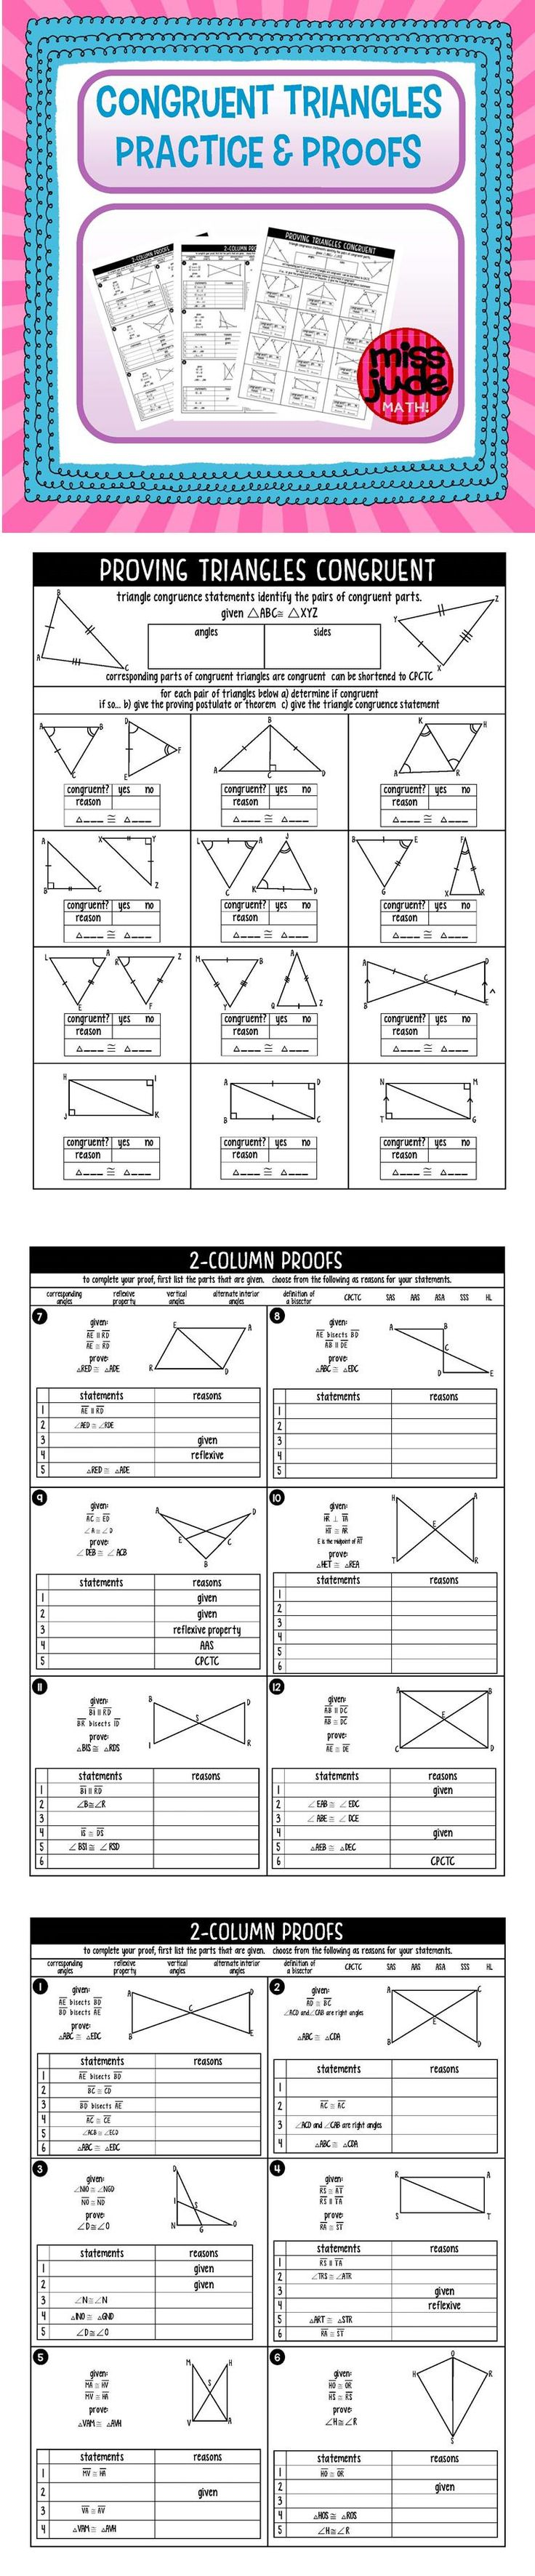 Notes and practice to introduce students to triangle congruence and proving triangles congruent. From the miss jude math! tpt math shop